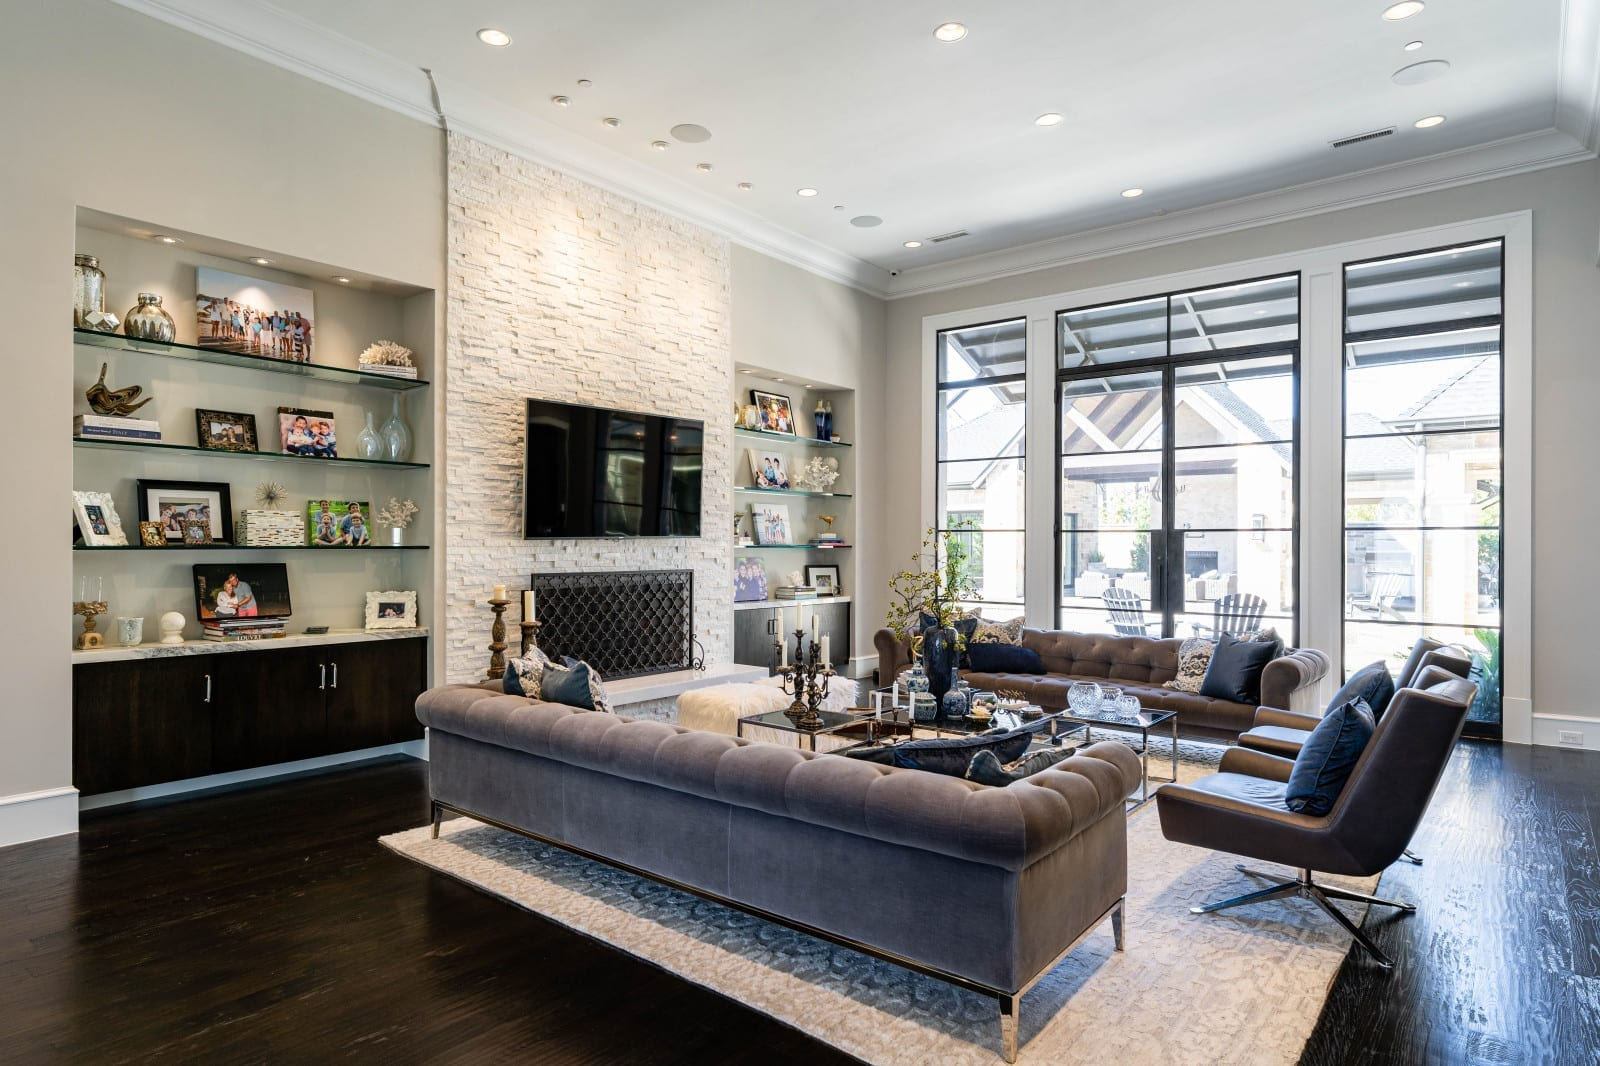 transitional modern style home designed by home builders in Dallas Texas 3 - Millennial Design + Build